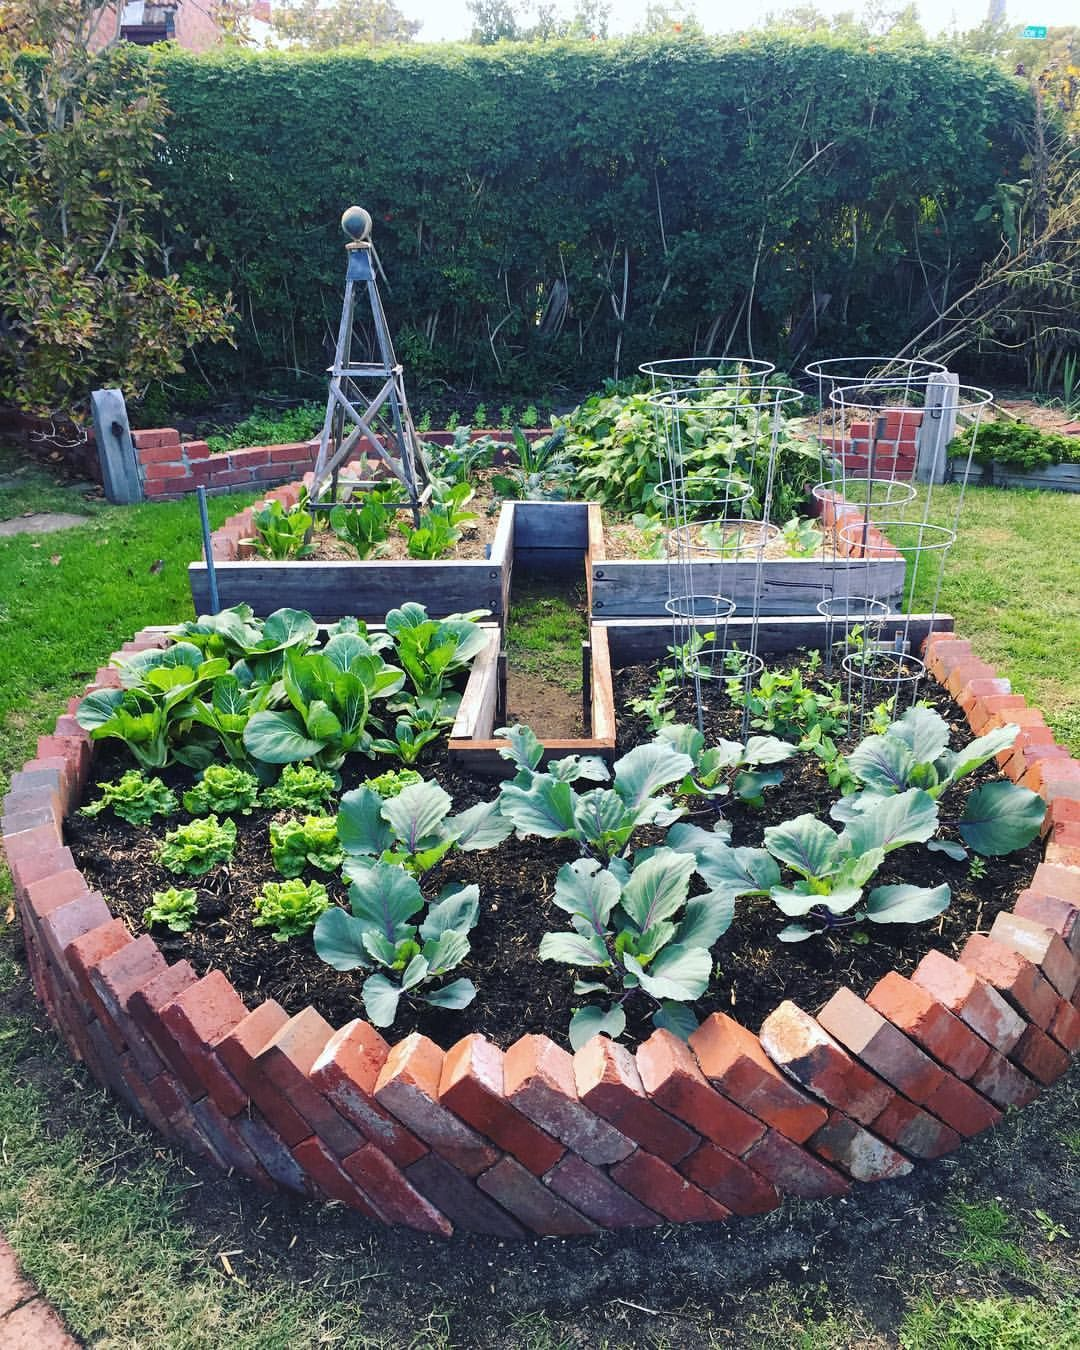 11f10f0e17565ca738b54685228643e9 - Sustainable Gardening In The City Of Melbourne